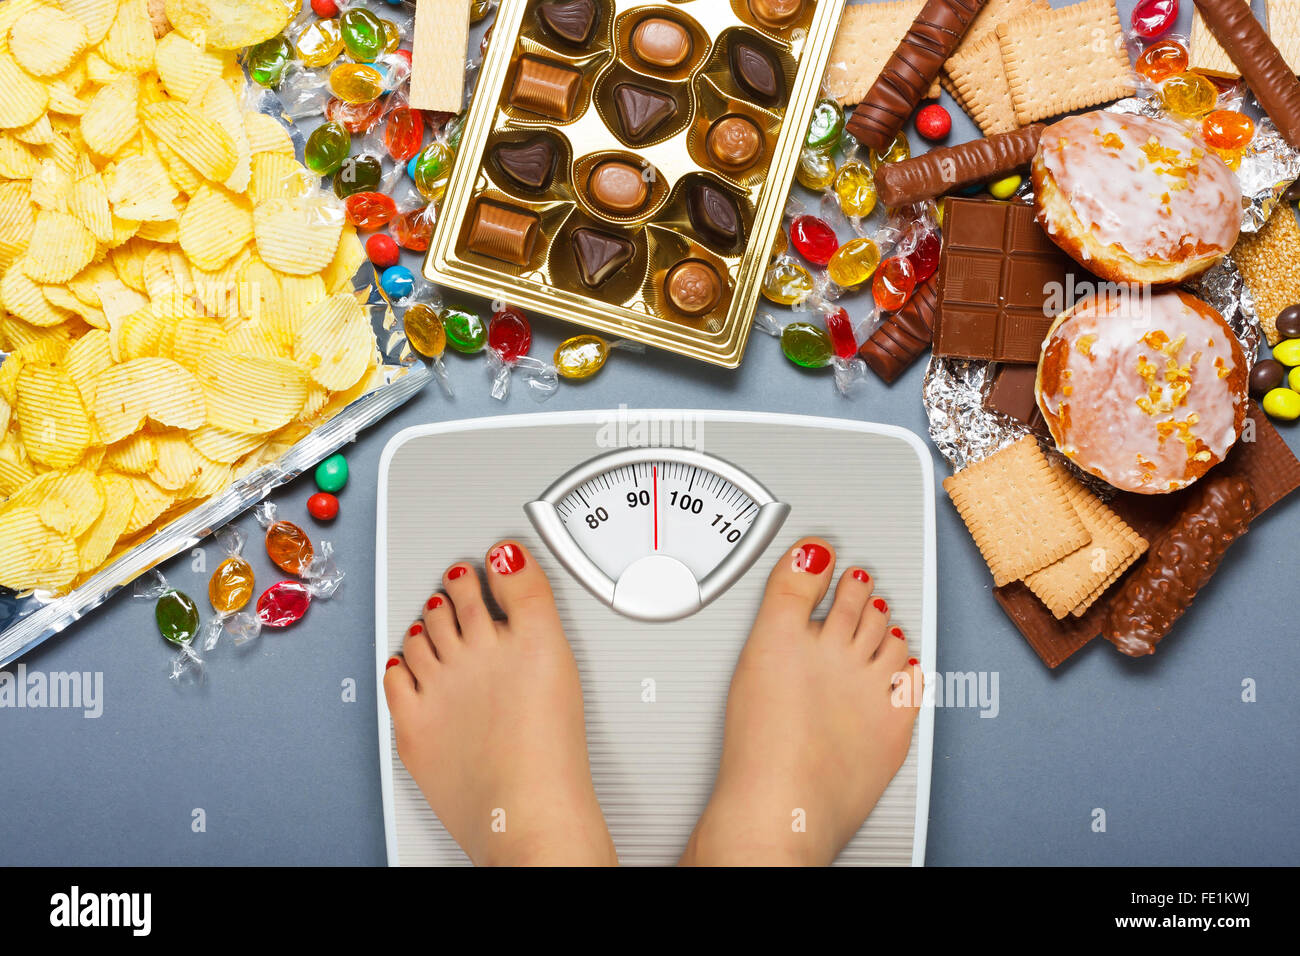 Unhealthy diet - overweight. - Stock Image